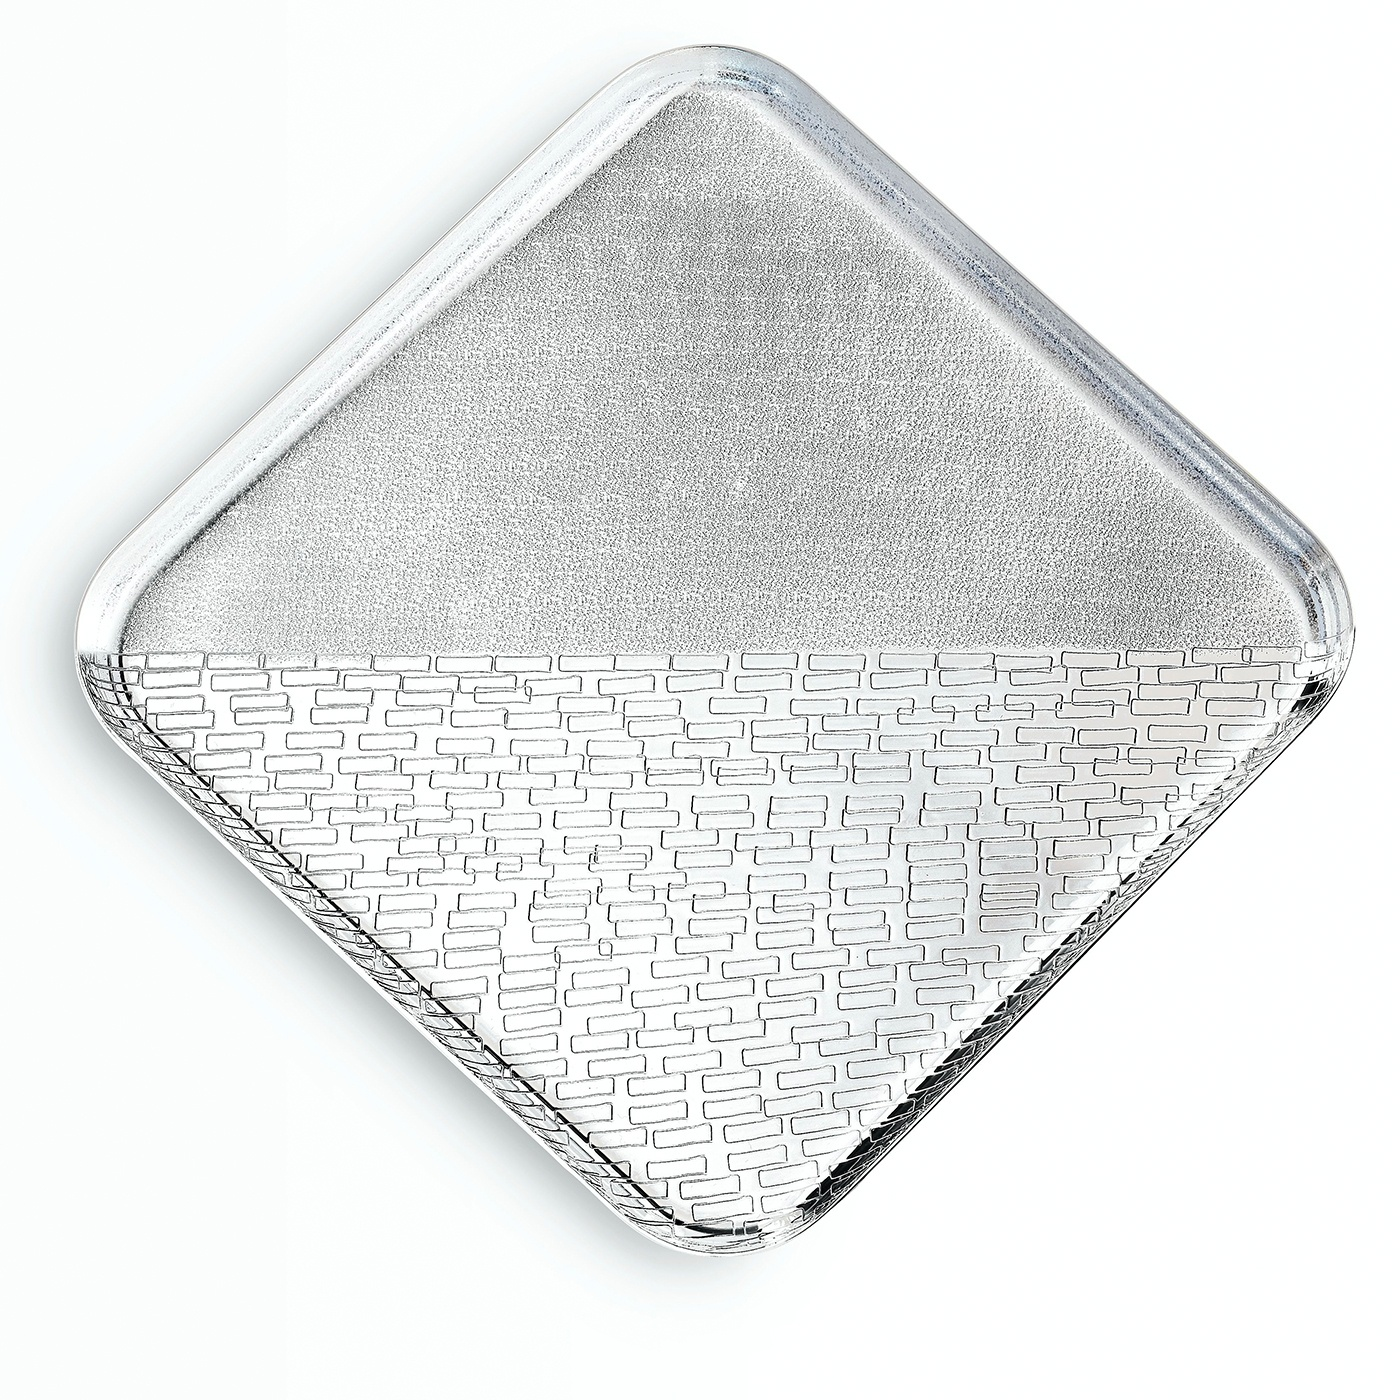 Oblio Square Tray - This elegant object of functional decor can be used to serve drinks or food, to display collectables on a table or as a vide posh | Matter of Stuff